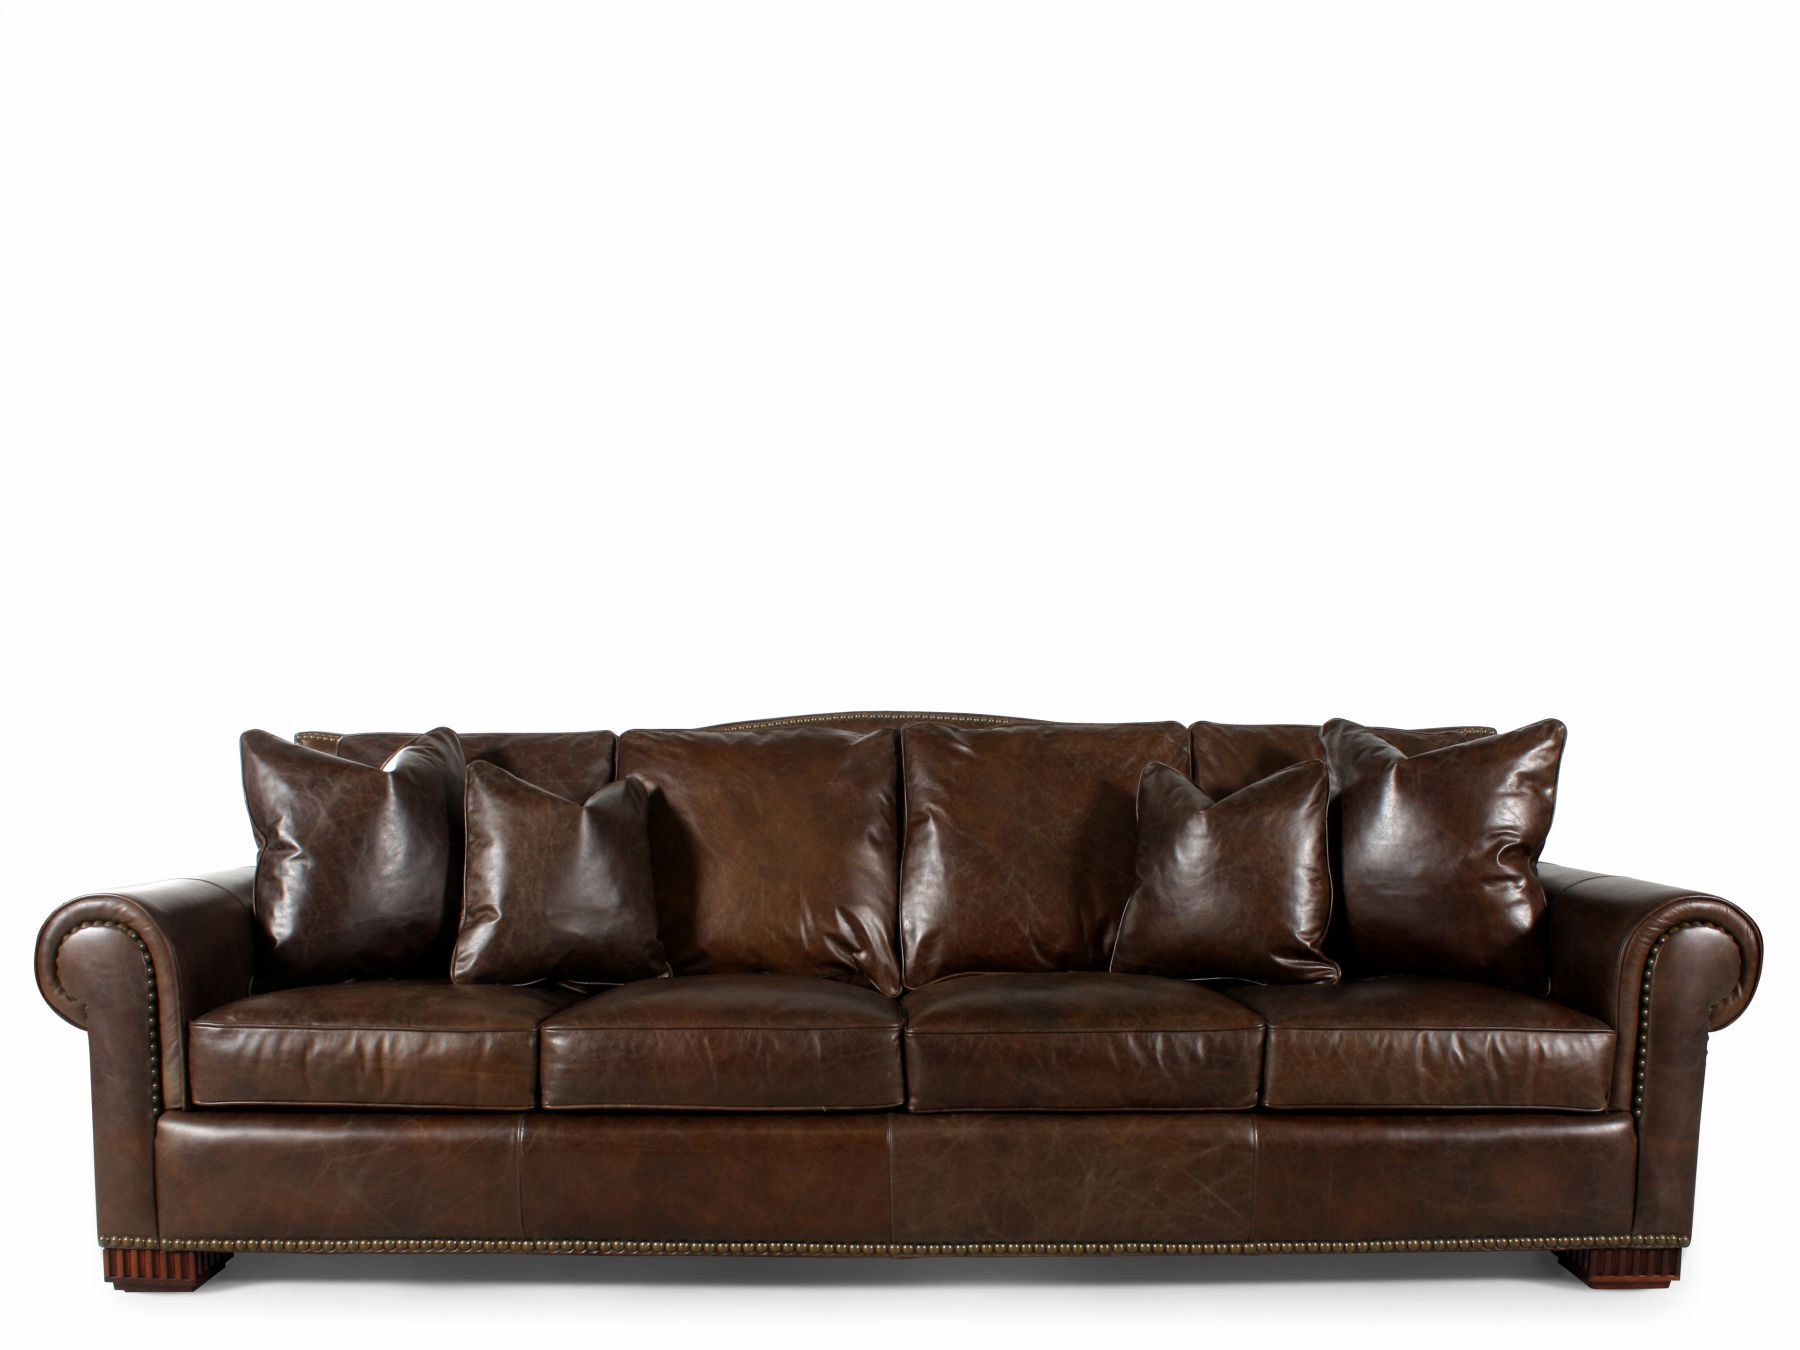 corey chocolate brown sectional sofa world market apel reviews nailhead accented leather in mathis